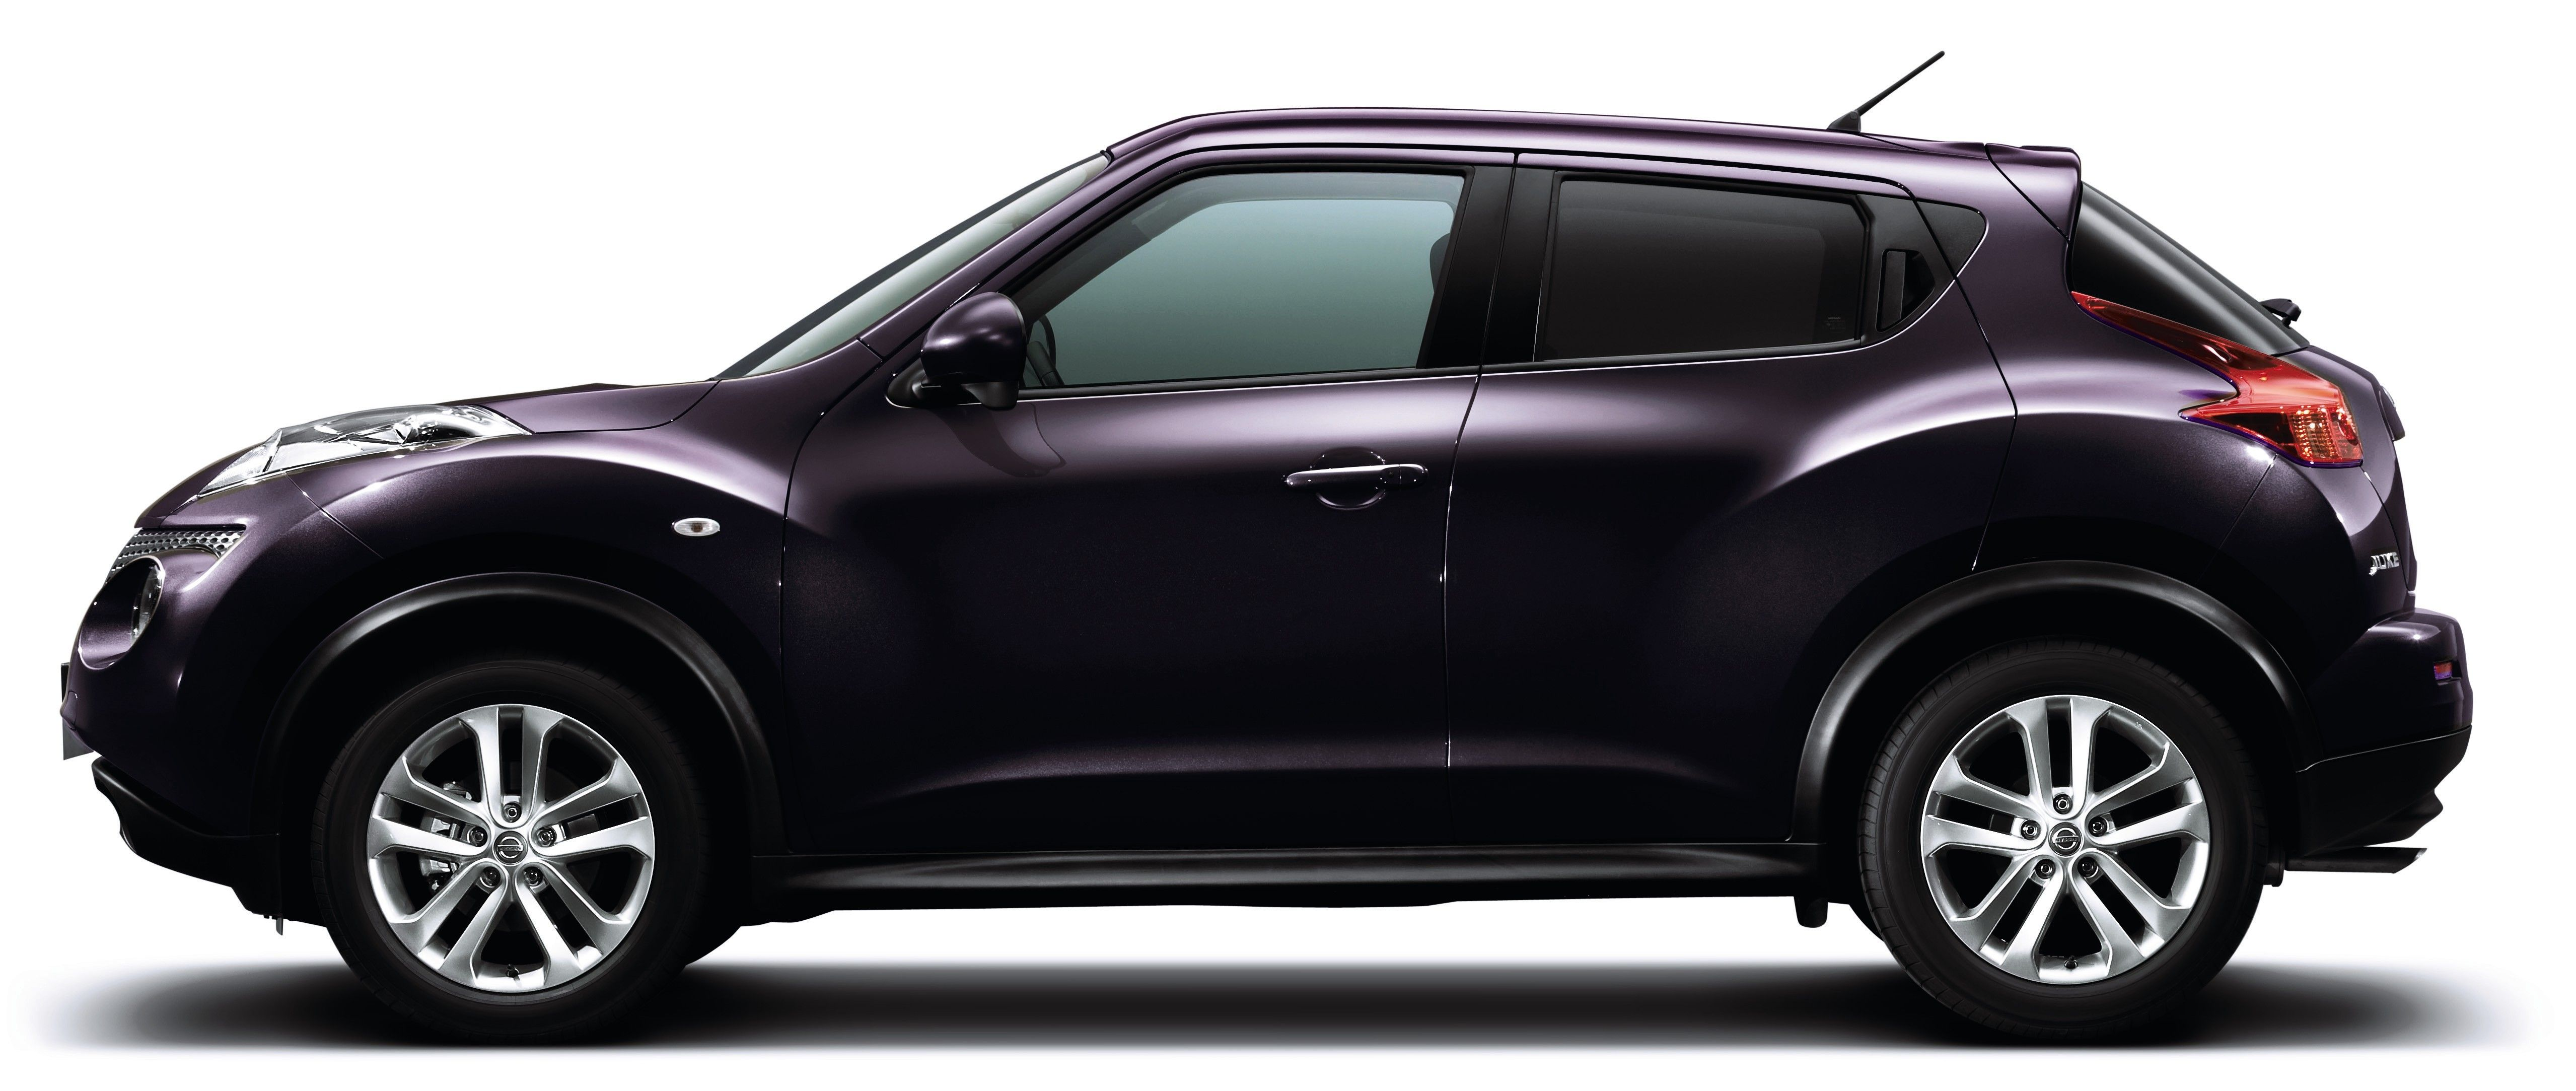 Nissan juke special edition premium personalize package midnight purple